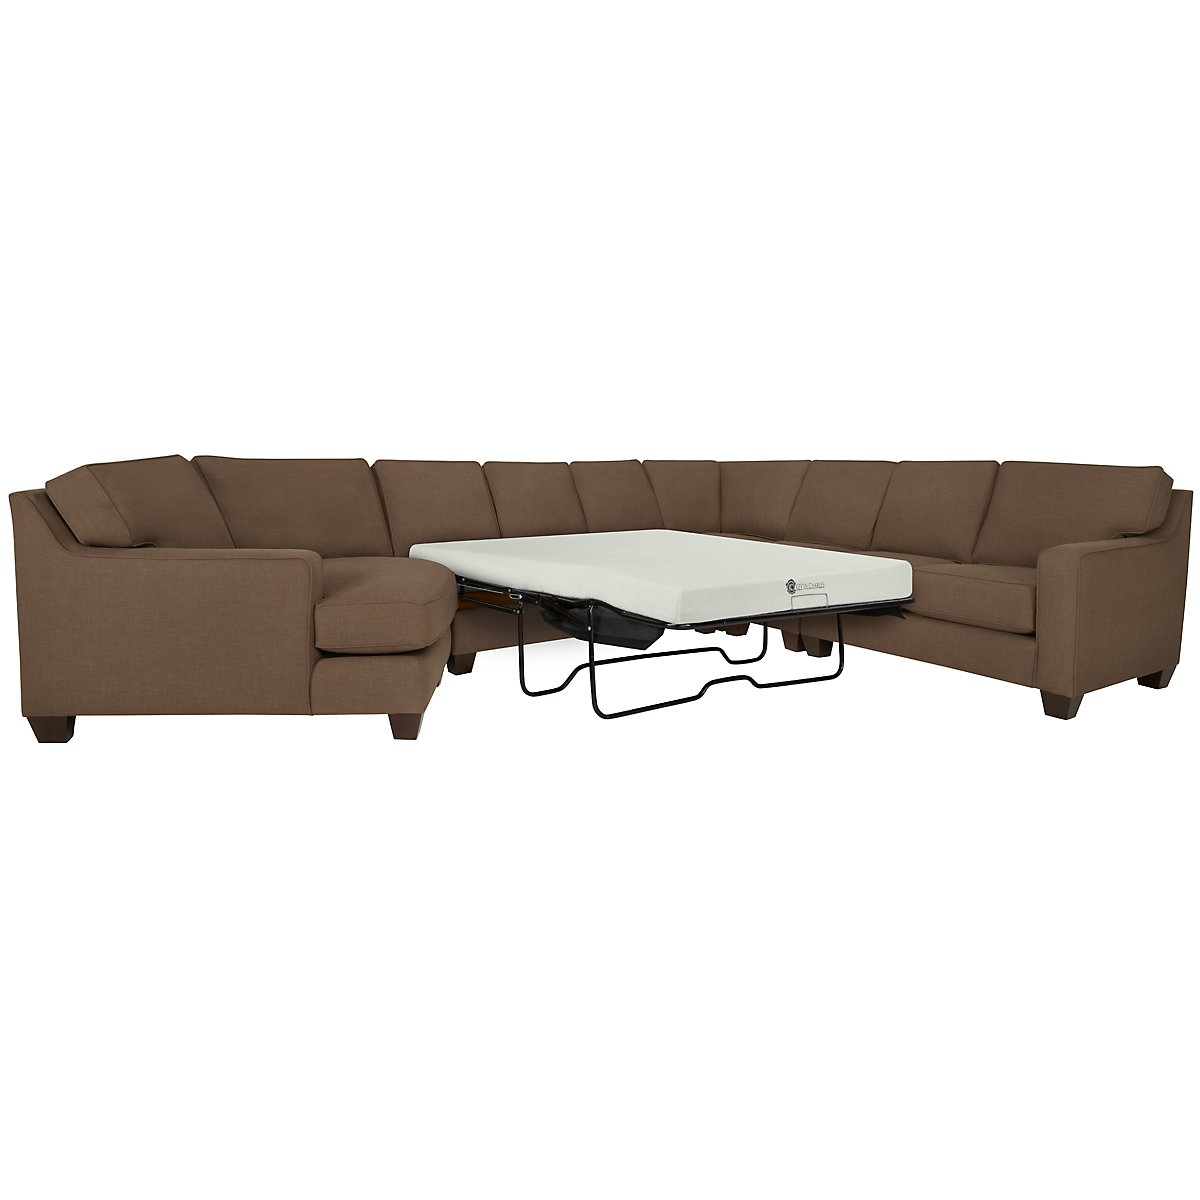 York Dark Brown Fabric Large Left Cuddler Memory Foam Sleeper Sectional